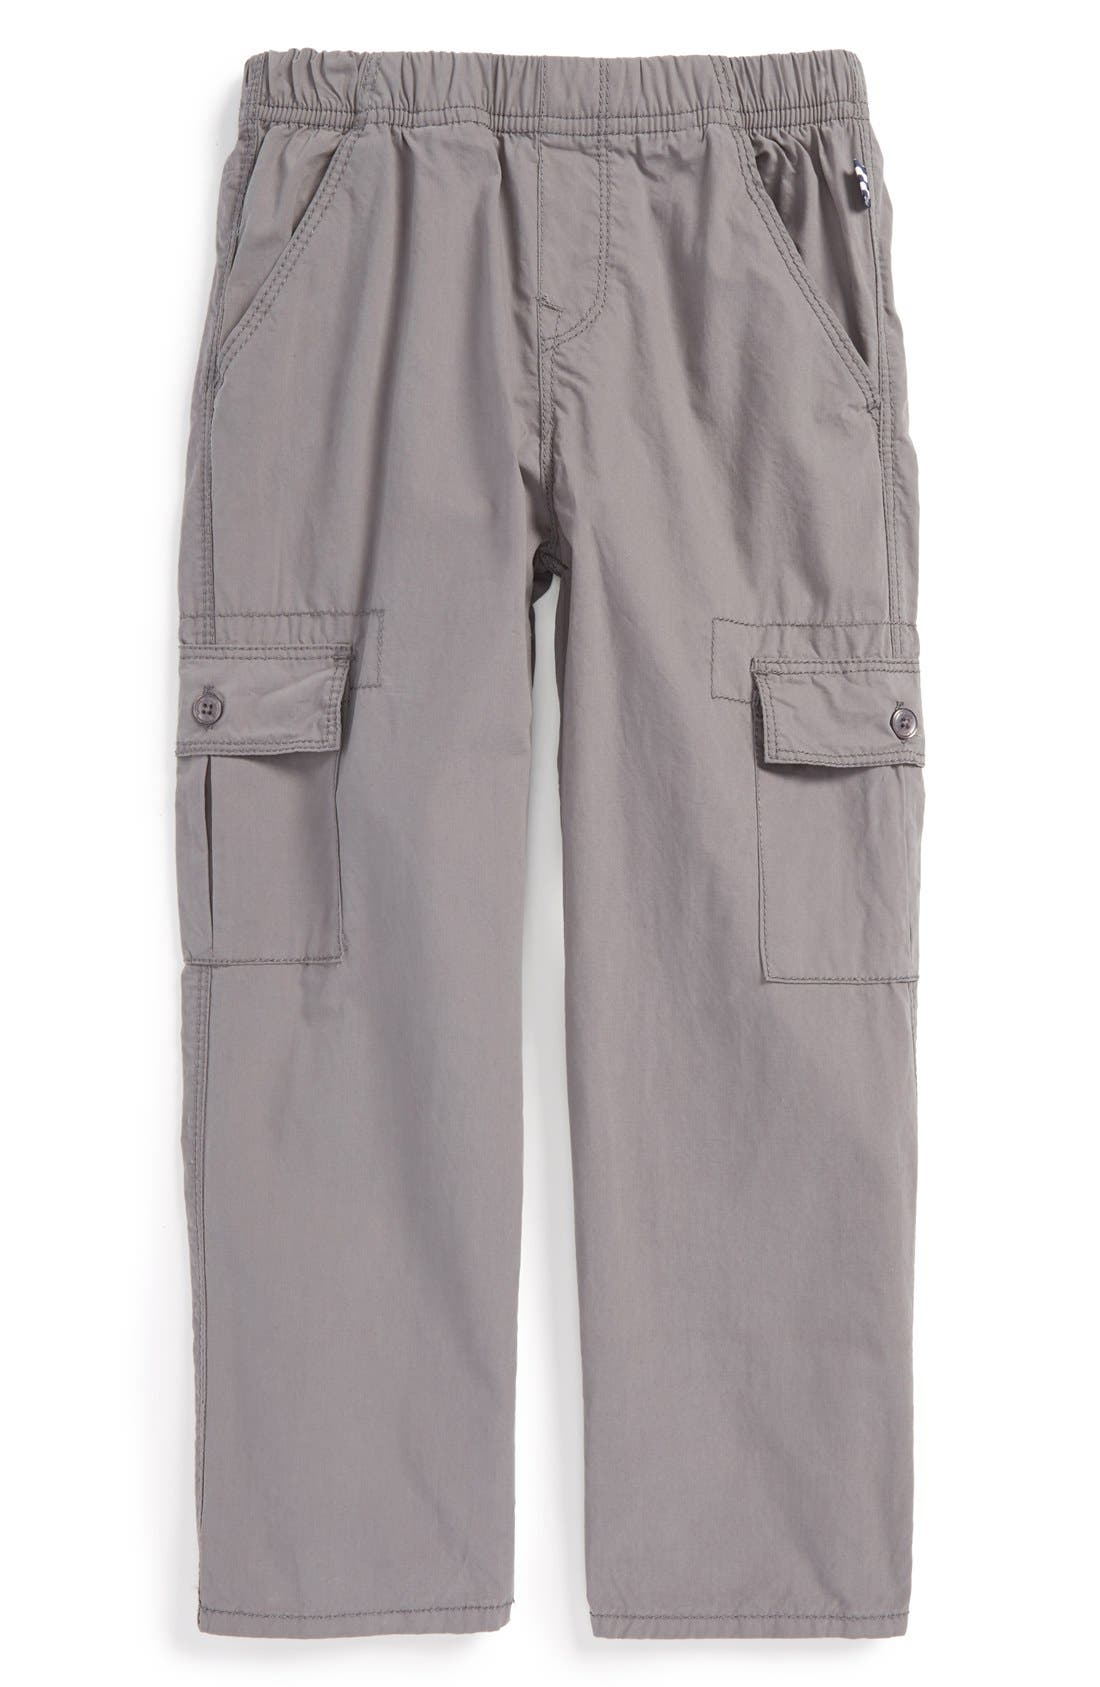 Alternate Image 1 Selected - Splendid Cargo Pants (Toddler Boys & Little Boys)